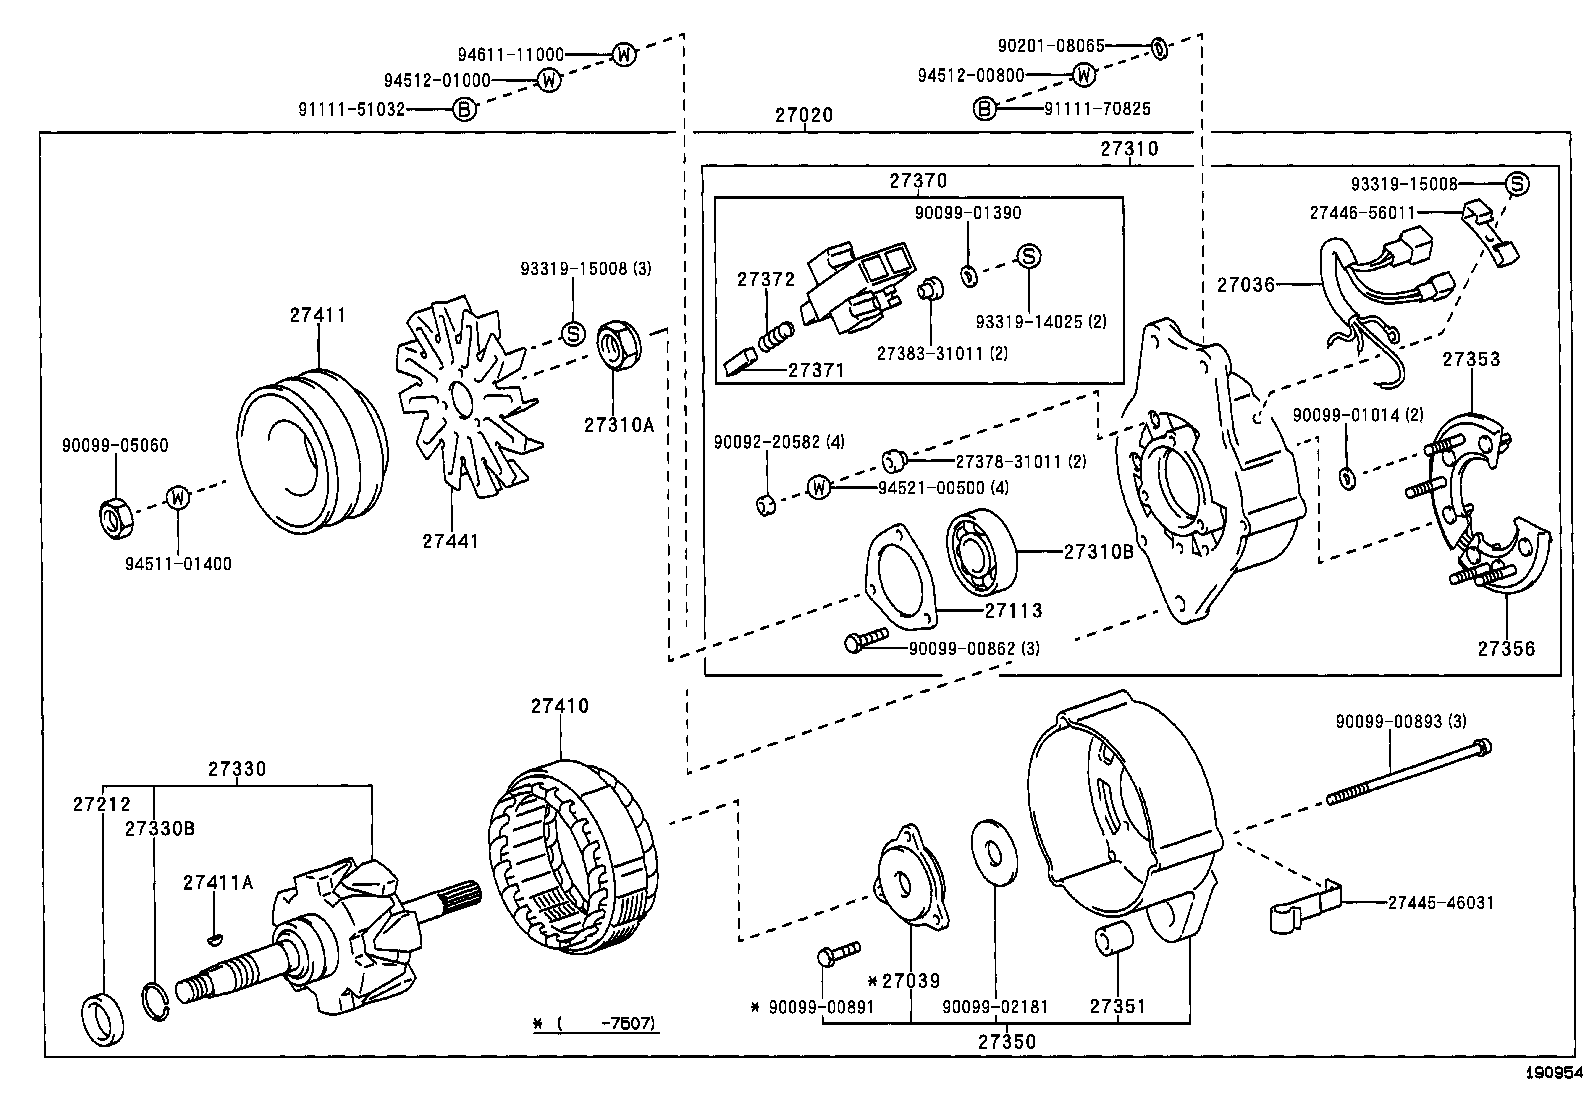 toyota supra 1983 wiring harness diagram toyota corolla wiring diagram wiring diagram